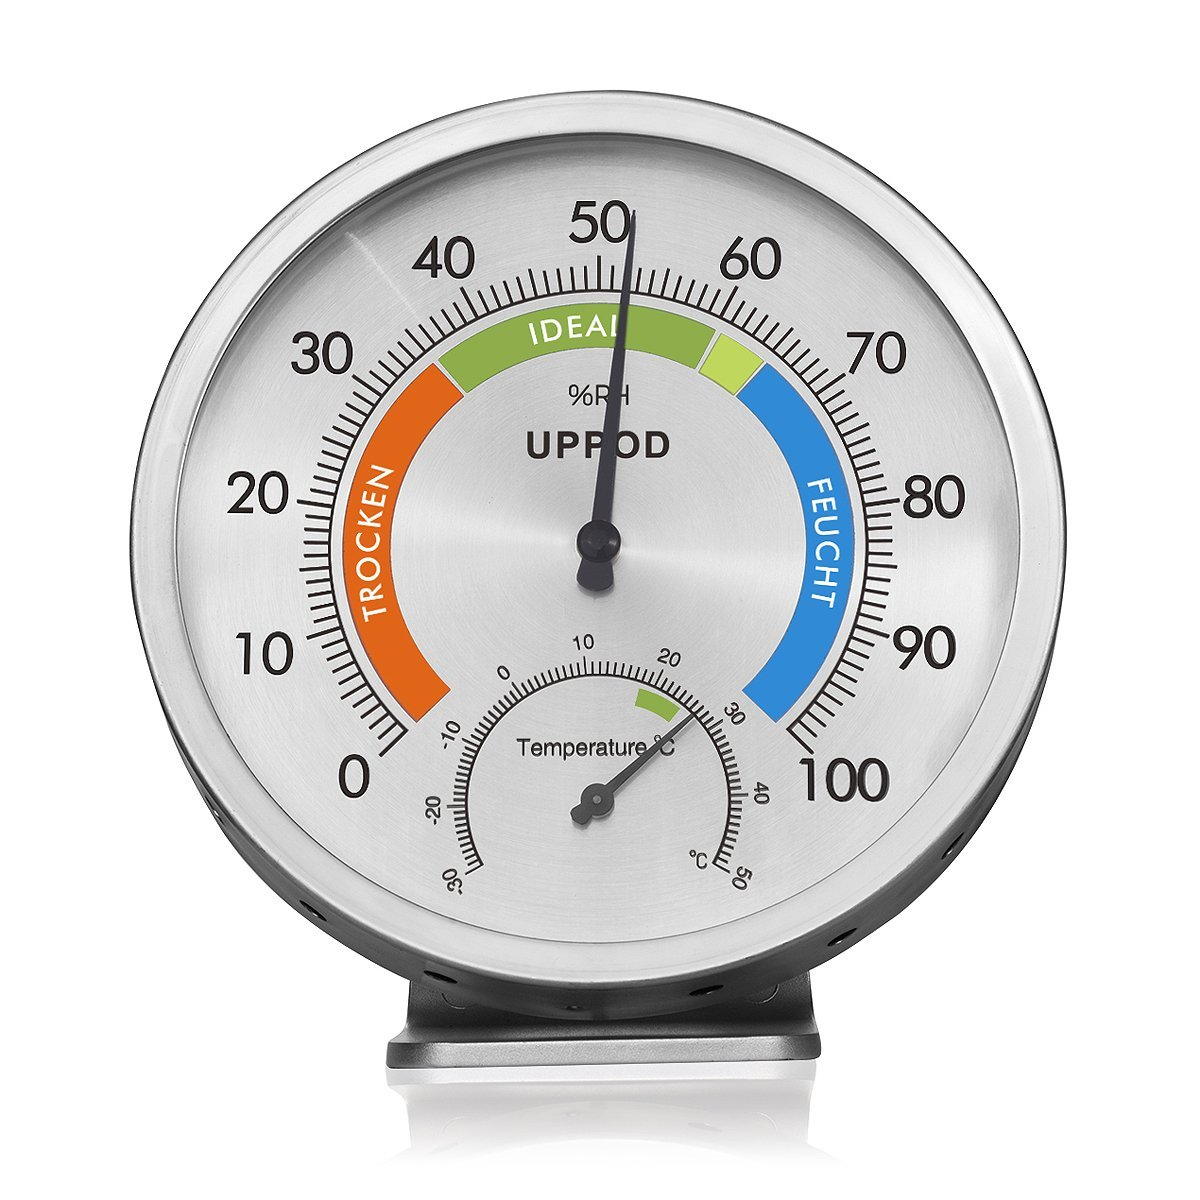 LittleGood 5'' Indoor Outdoor Hygrometer/Thermometer, Humidity Gauge Indicator Temperature Humidity Monitor, Analog Hygrometer Humidor for Patio,Wall Decorative,Room,Home,Office,Greenhouse,Reptiles